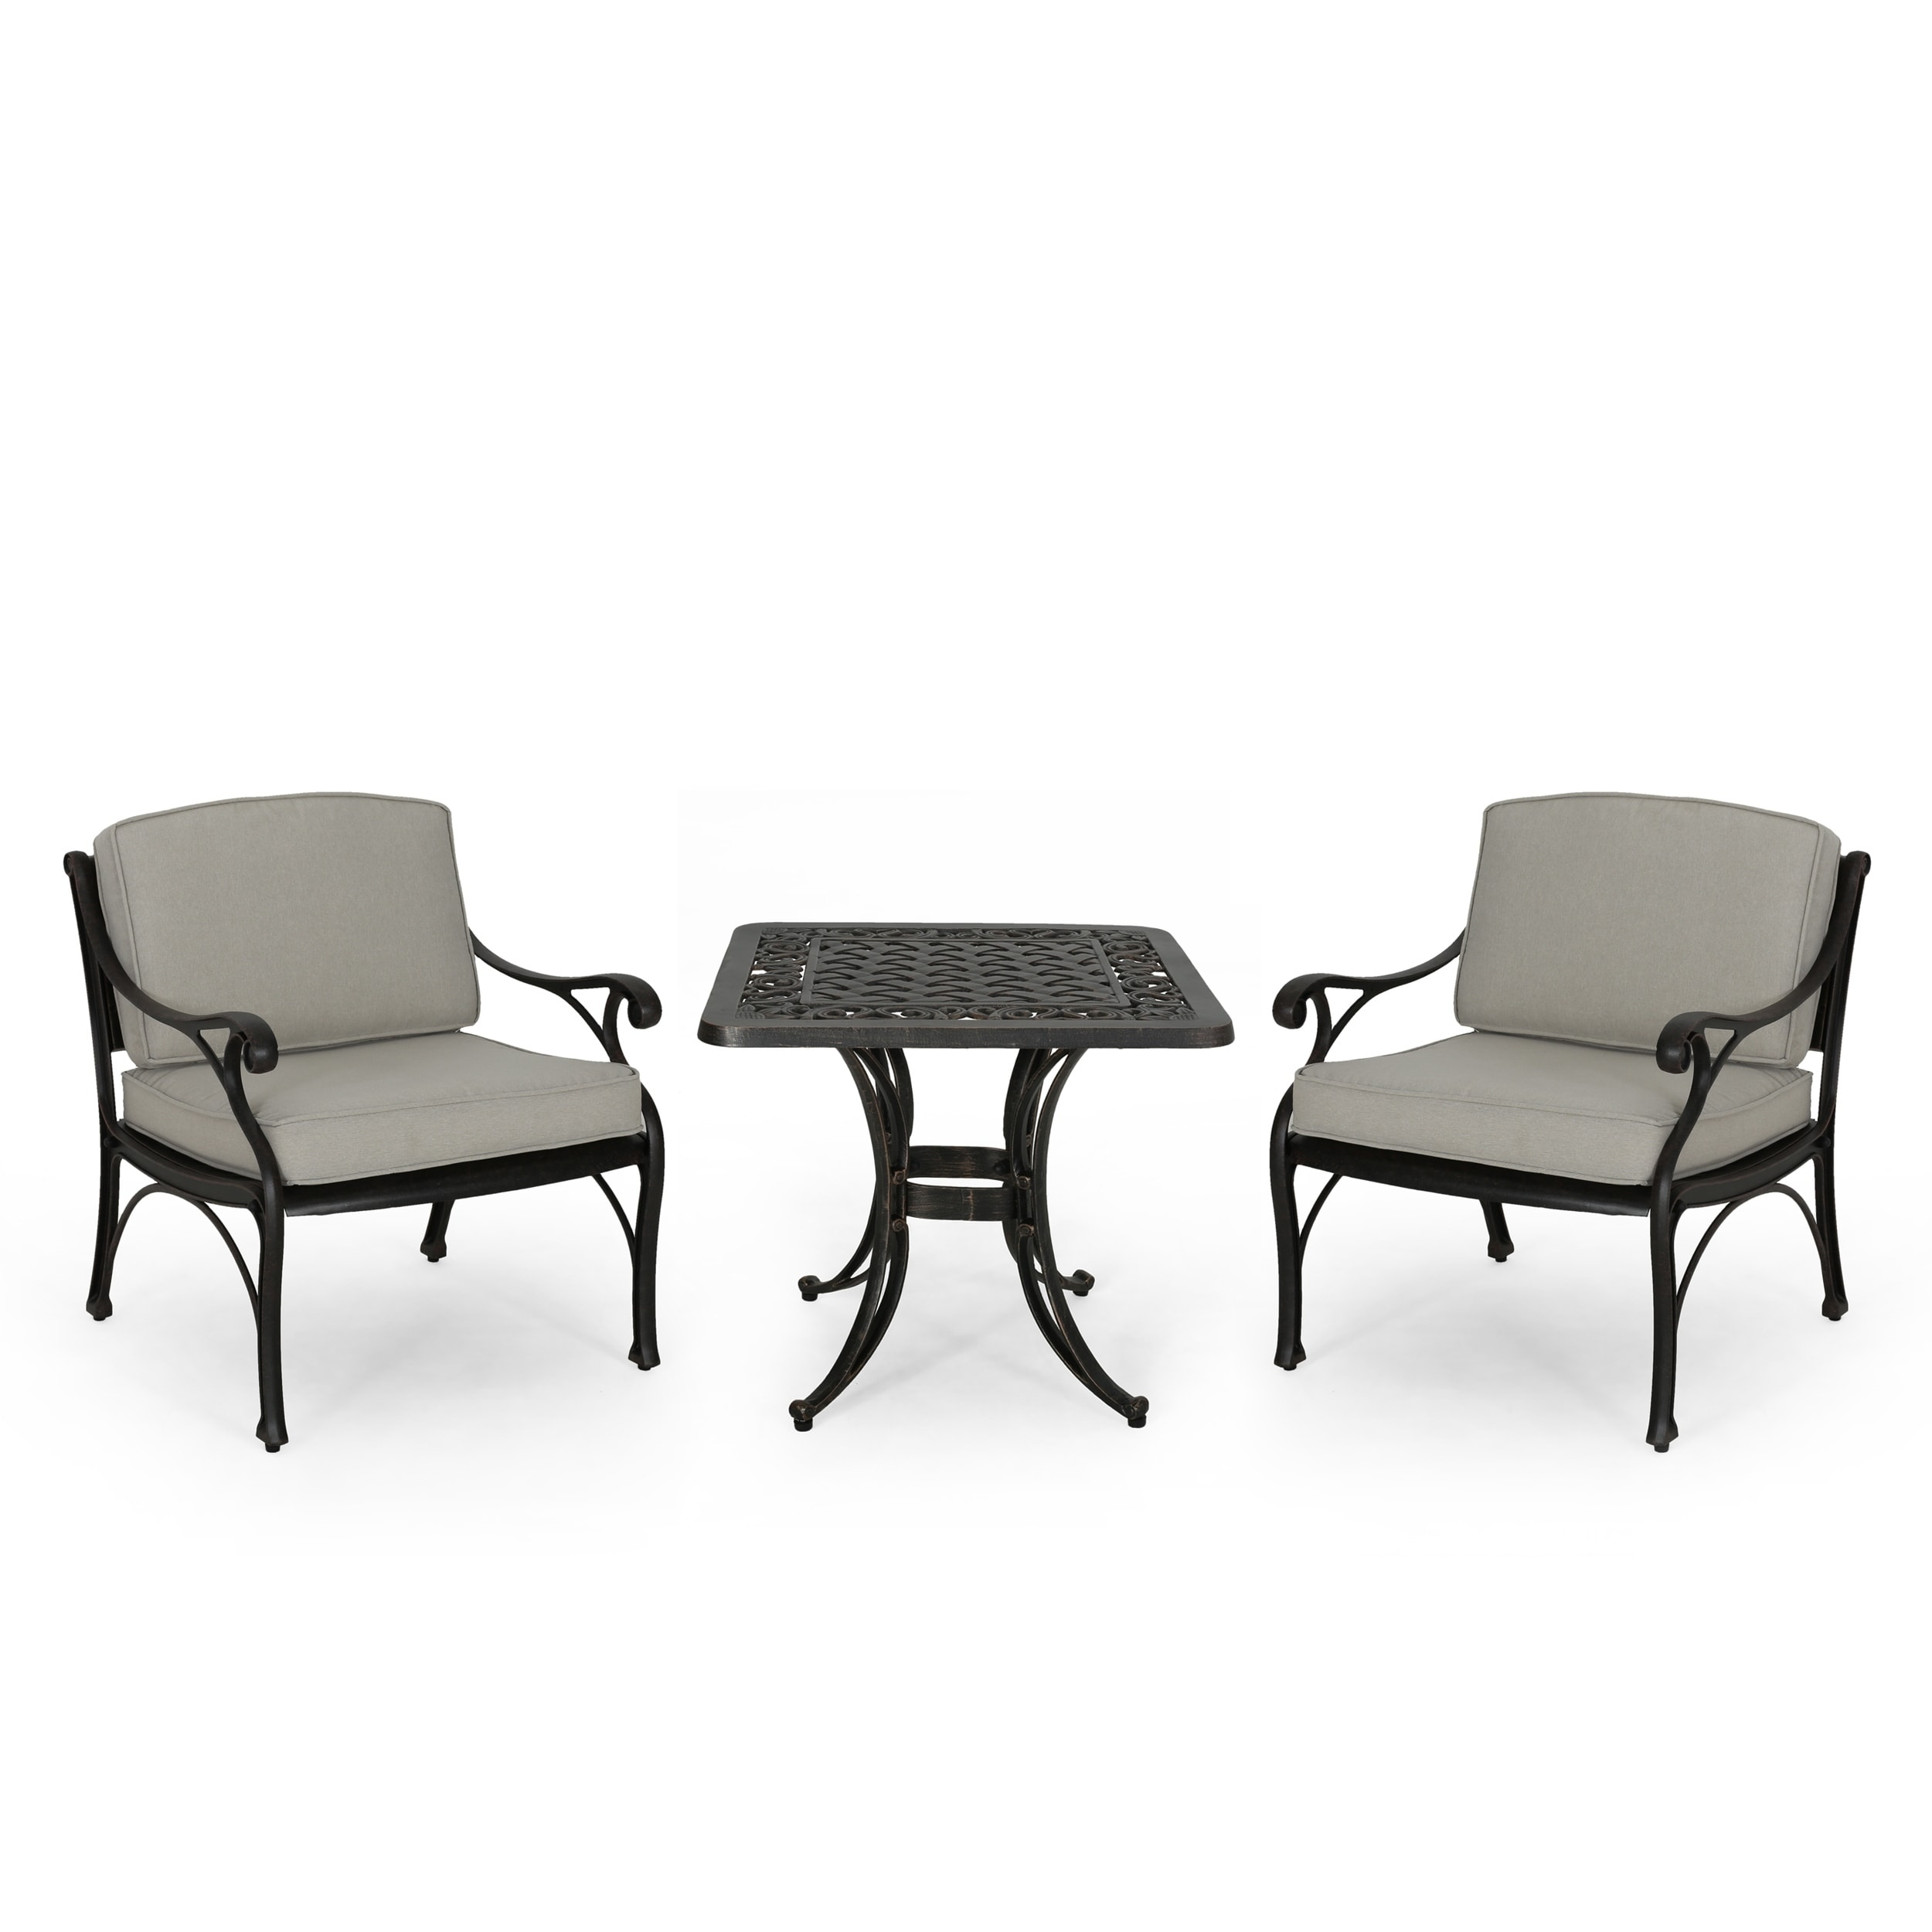 Superbe Shop Sunshine Outdoor 2 Seater Aluminum Club Chair And Table Set By  Christopher Knight Home   Free Shipping Today   Overstock   27812163